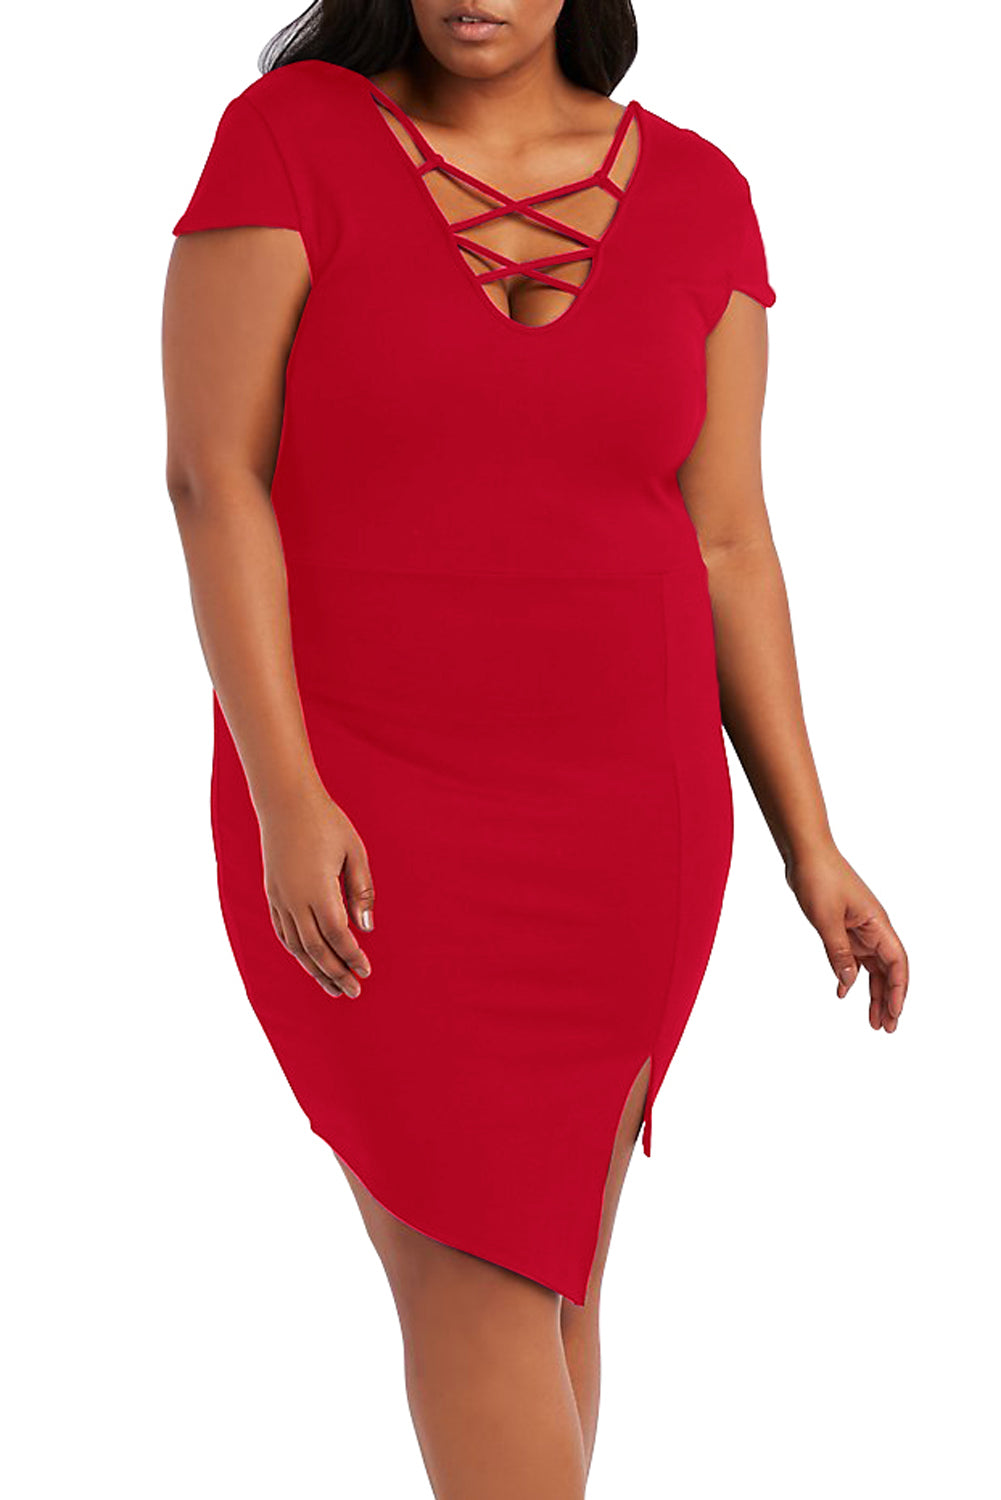 Plus Size Red Strappy Asymmetrical Bodycon Dress